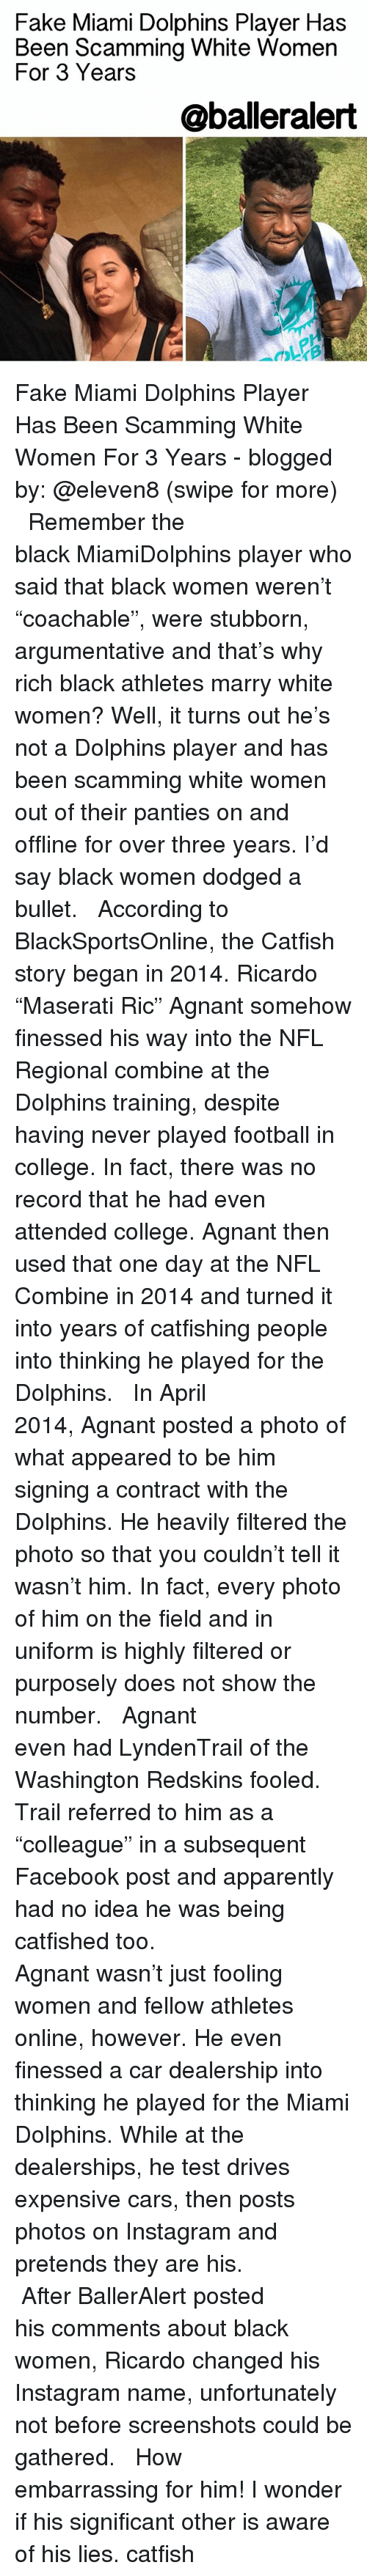 "Memes, 🤖, and Miami: Fake Miami Dolphins Player Has  Been Scamming White Women  For 3 Years  @balleralert Fake Miami Dolphins Player Has Been Scamming White Women For 3 Years - blogged by: @eleven8 (swipe for more) ⠀⠀⠀⠀⠀⠀⠀⠀⠀ ⠀⠀⠀⠀⠀⠀⠀⠀⠀ Remember the black MiamiDolphins player who said that black women weren't ""coachable"", were stubborn, argumentative and that's why rich black athletes marry white women? Well, it turns out he's not a Dolphins player and has been scamming white women out of their panties on and offline for over three years. I'd say black women dodged a bullet. ⠀⠀⠀⠀⠀⠀⠀⠀⠀ ⠀⠀⠀⠀⠀⠀⠀⠀⠀ According to BlackSportsOnline, the Catfish story began in 2014. Ricardo ""Maserati Ric"" Agnant somehow finessed his way into the NFL Regional combine at the Dolphins training, despite having never played football in college. In fact, there was no record that he had even attended college. Agnant then used that one day at the NFL Combine in 2014 and turned it into years of catfishing people into thinking he played for the Dolphins. ⠀⠀⠀⠀⠀⠀⠀⠀⠀ ⠀⠀⠀⠀⠀⠀⠀⠀⠀ In April 2014, Agnant posted a photo of what appeared to be him signing a contract with the Dolphins. He heavily filtered the photo so that you couldn't tell it wasn't him. In fact, every photo of him on the field and in uniform is highly filtered or purposely does not show the number. ⠀⠀⠀⠀⠀⠀⠀⠀⠀ ⠀⠀⠀⠀⠀⠀⠀⠀⠀ Agnant even had LyndenTrail of the Washington Redskins fooled. Trail referred to him as a ""colleague"" in a subsequent Facebook post and apparently had no idea he was being catfished too. ⠀⠀⠀⠀⠀⠀⠀⠀⠀ ⠀⠀⠀⠀⠀⠀⠀⠀⠀ Agnant wasn't just fooling women and fellow athletes online, however. He even finessed a car dealership into thinking he played for the Miami Dolphins. While at the dealerships, he test drives expensive cars, then posts photos on Instagram and pretends they are his. ⠀⠀⠀⠀⠀⠀⠀⠀⠀ ⠀⠀⠀⠀⠀⠀⠀⠀⠀ After BallerAlert posted his comments about black women, Ricardo changed his Instagram name, unfortunately not before screenshots could be gathered. ⠀⠀⠀⠀⠀⠀⠀⠀⠀ ⠀⠀⠀⠀⠀⠀⠀⠀⠀ How embarrassing for him! I wonder if his significant other is aware of his lies. catfish"